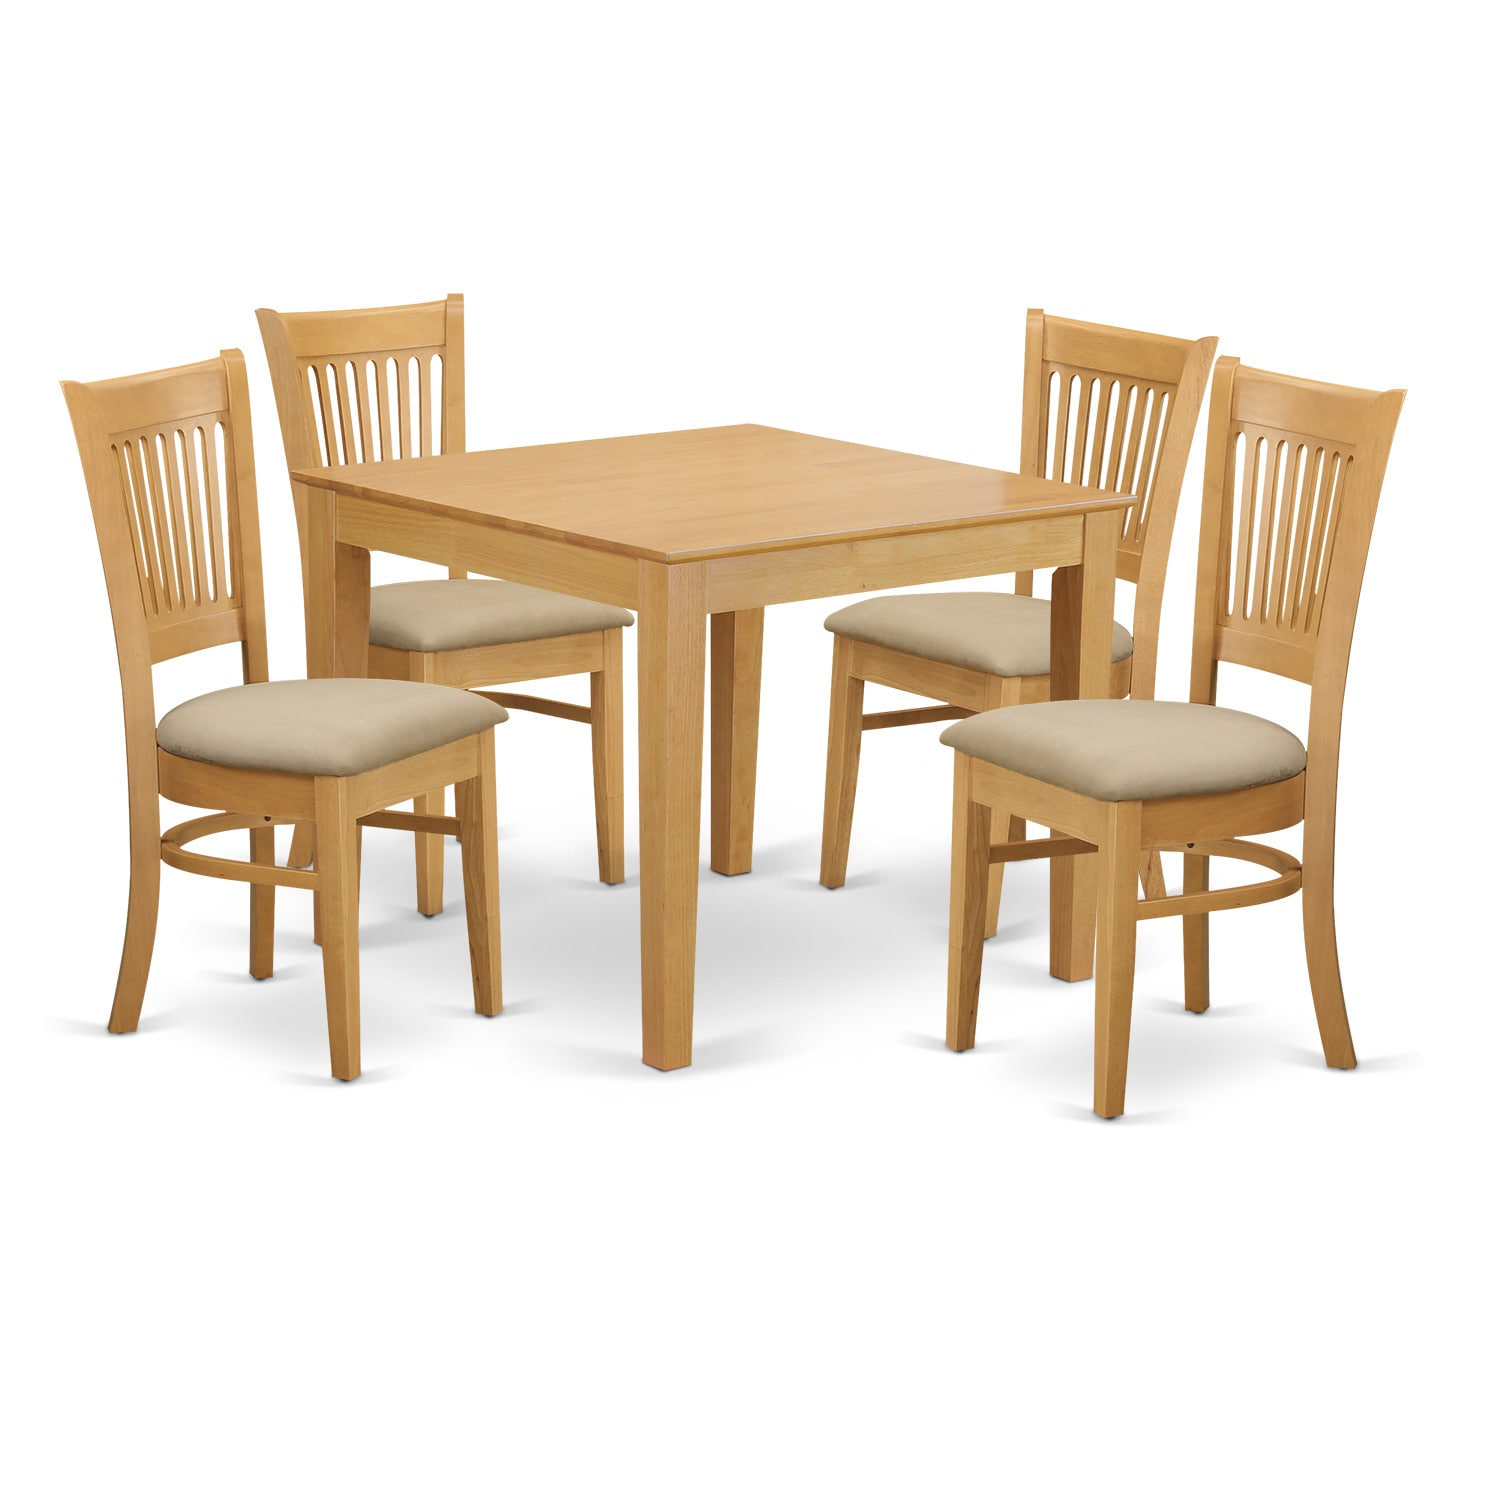 Oak Square Kitchen Table And Chairs Set